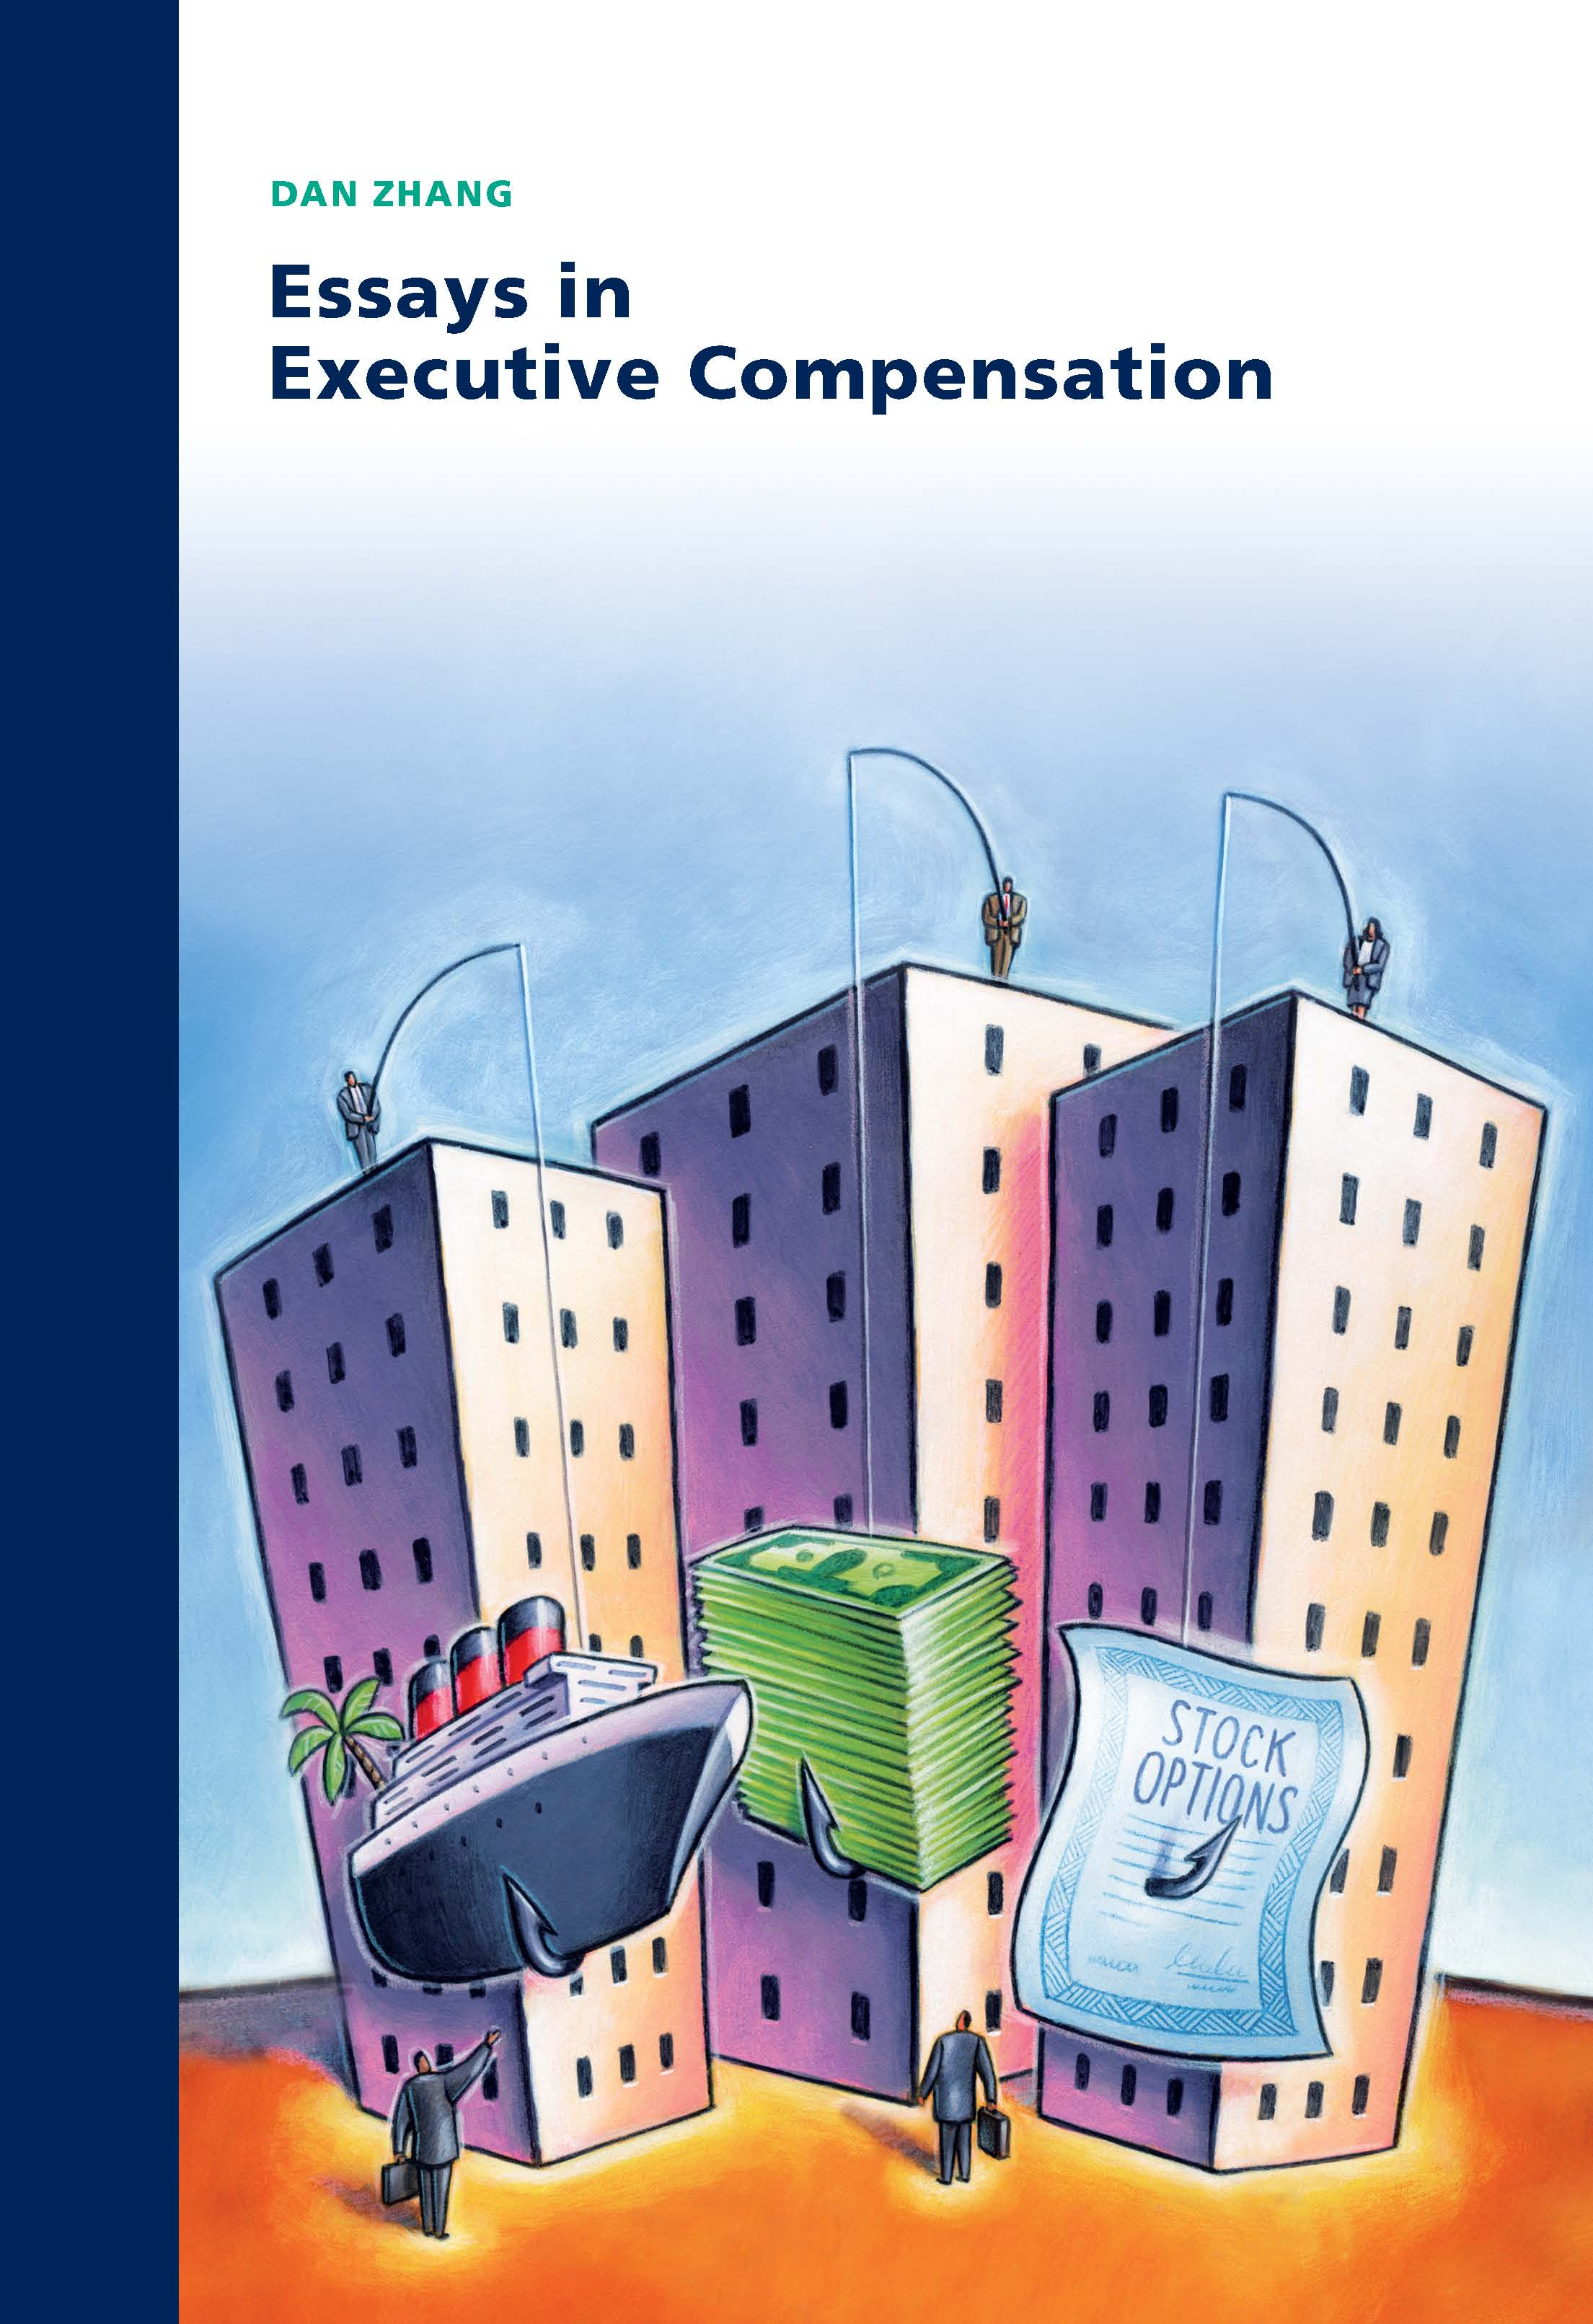 Tax consequences of compensation essay